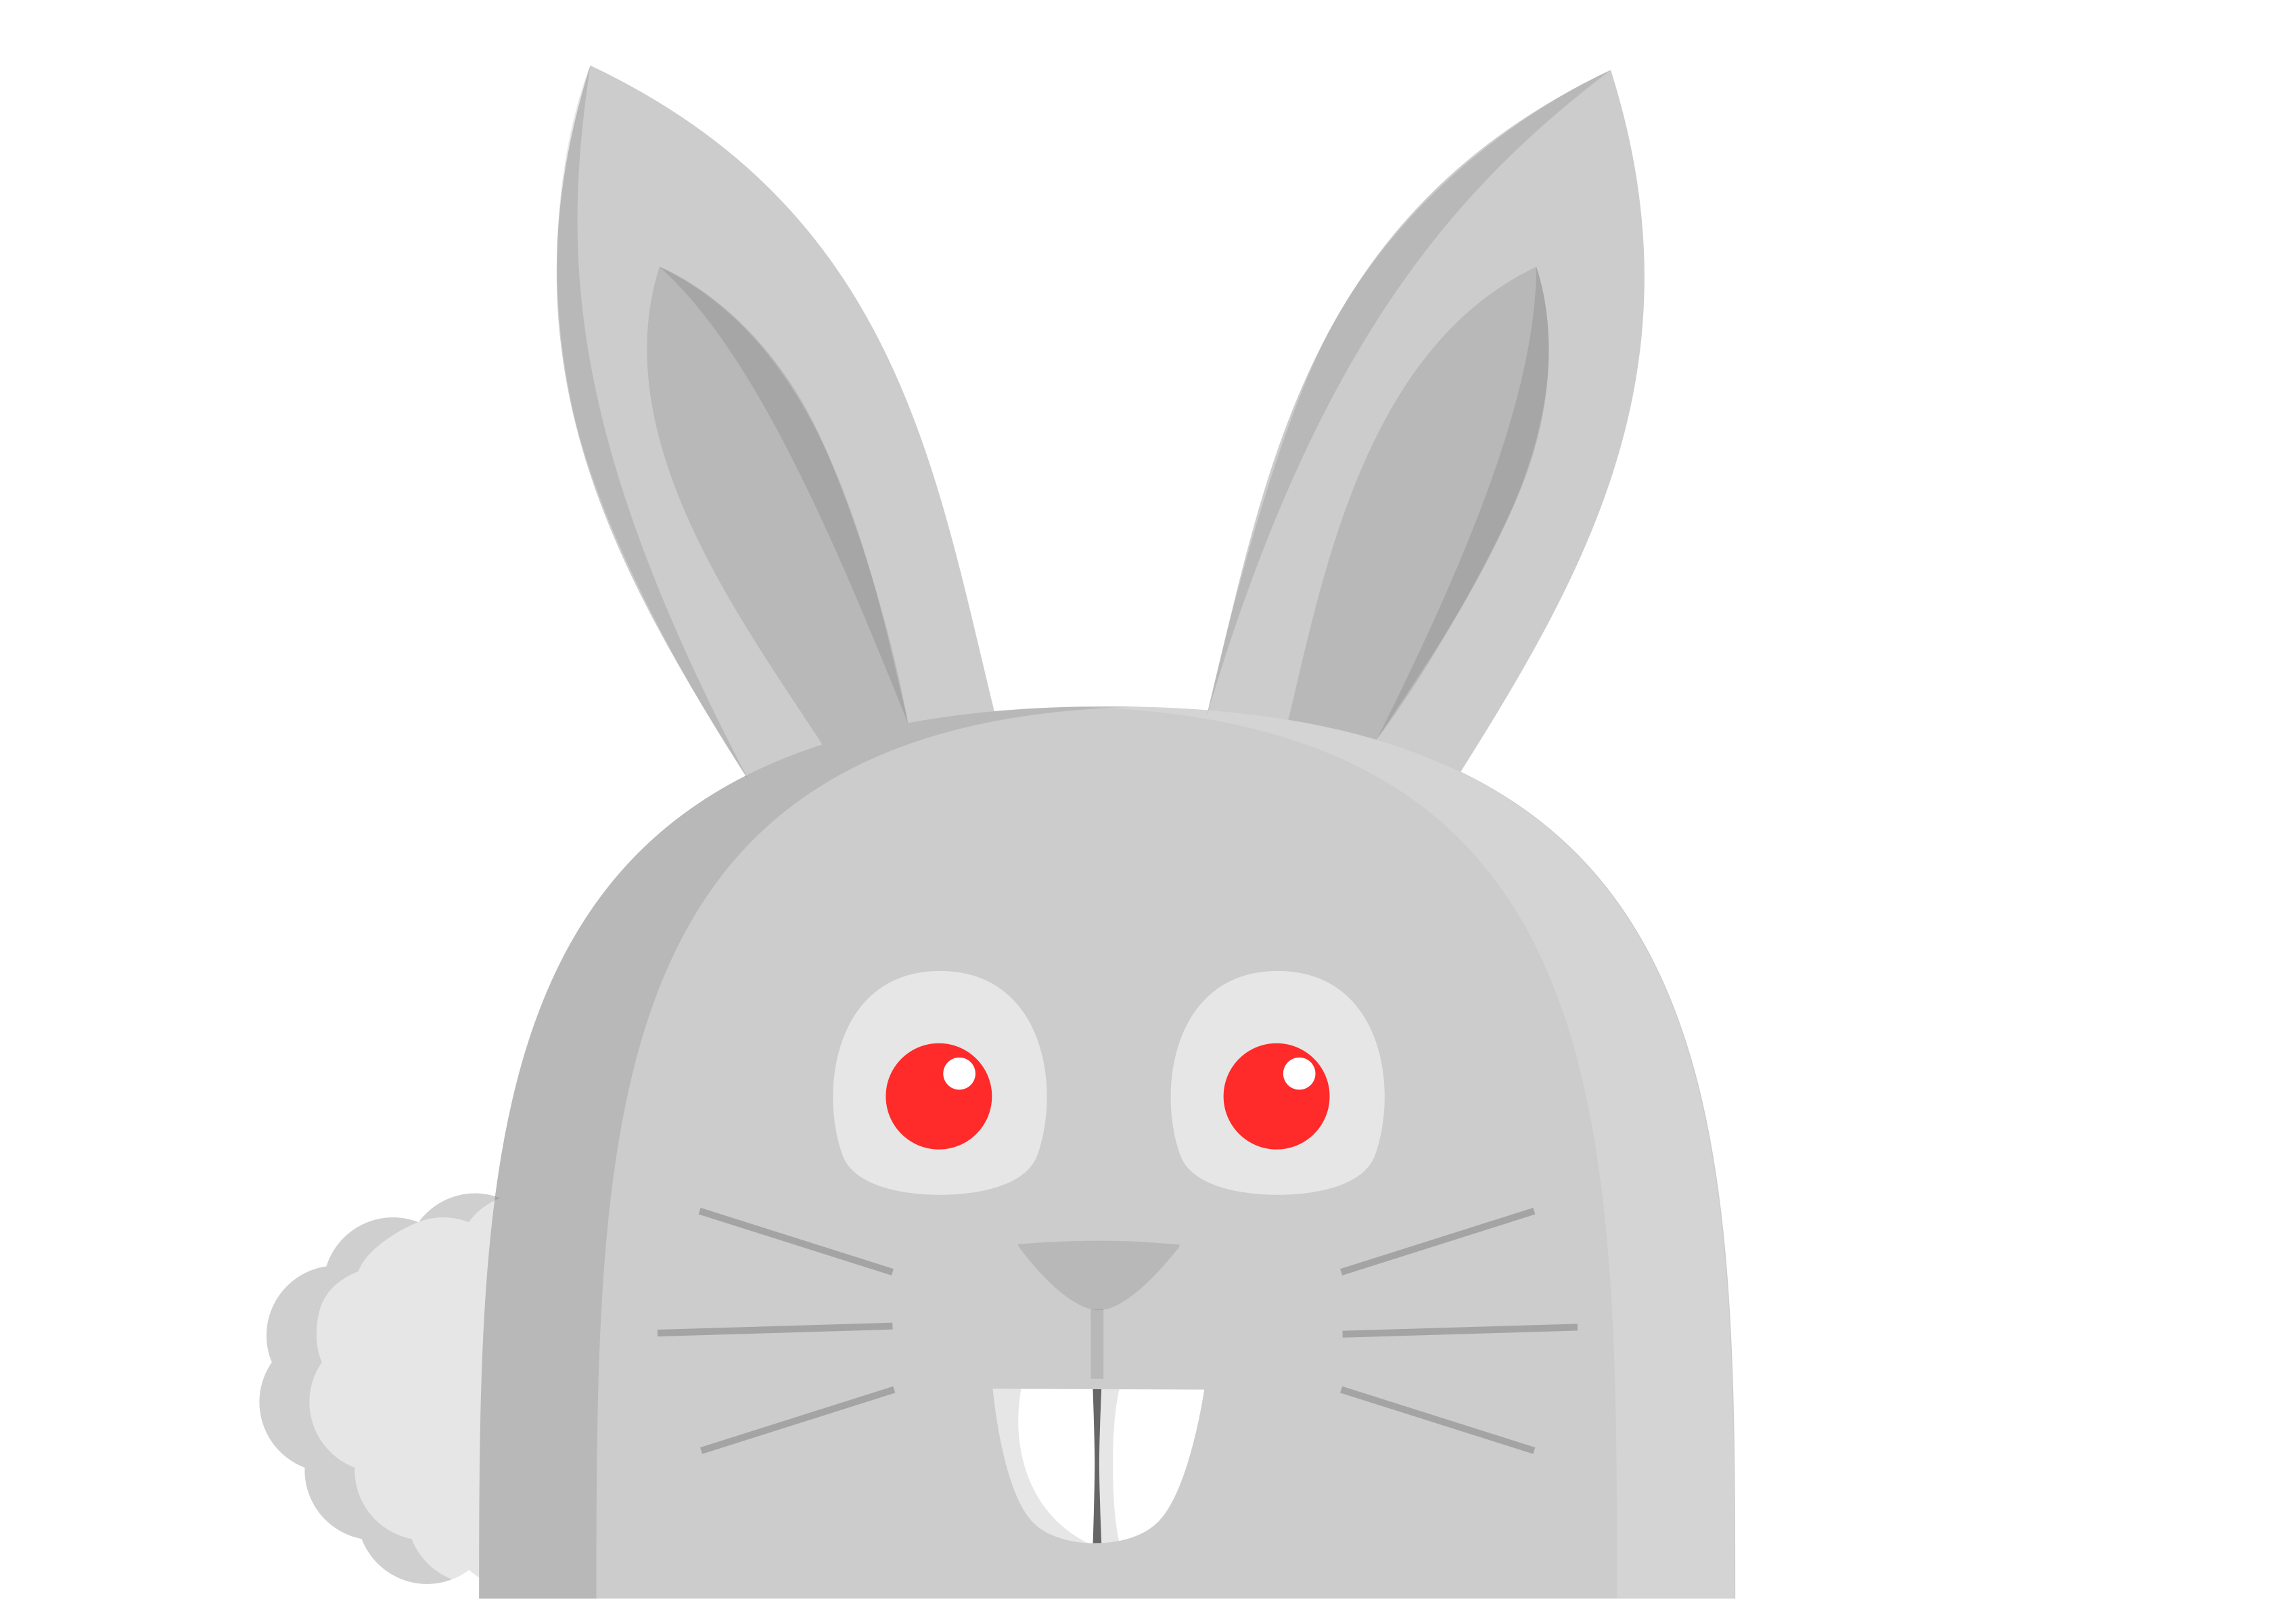 Clipart bunny nose. Rabbit oso big image